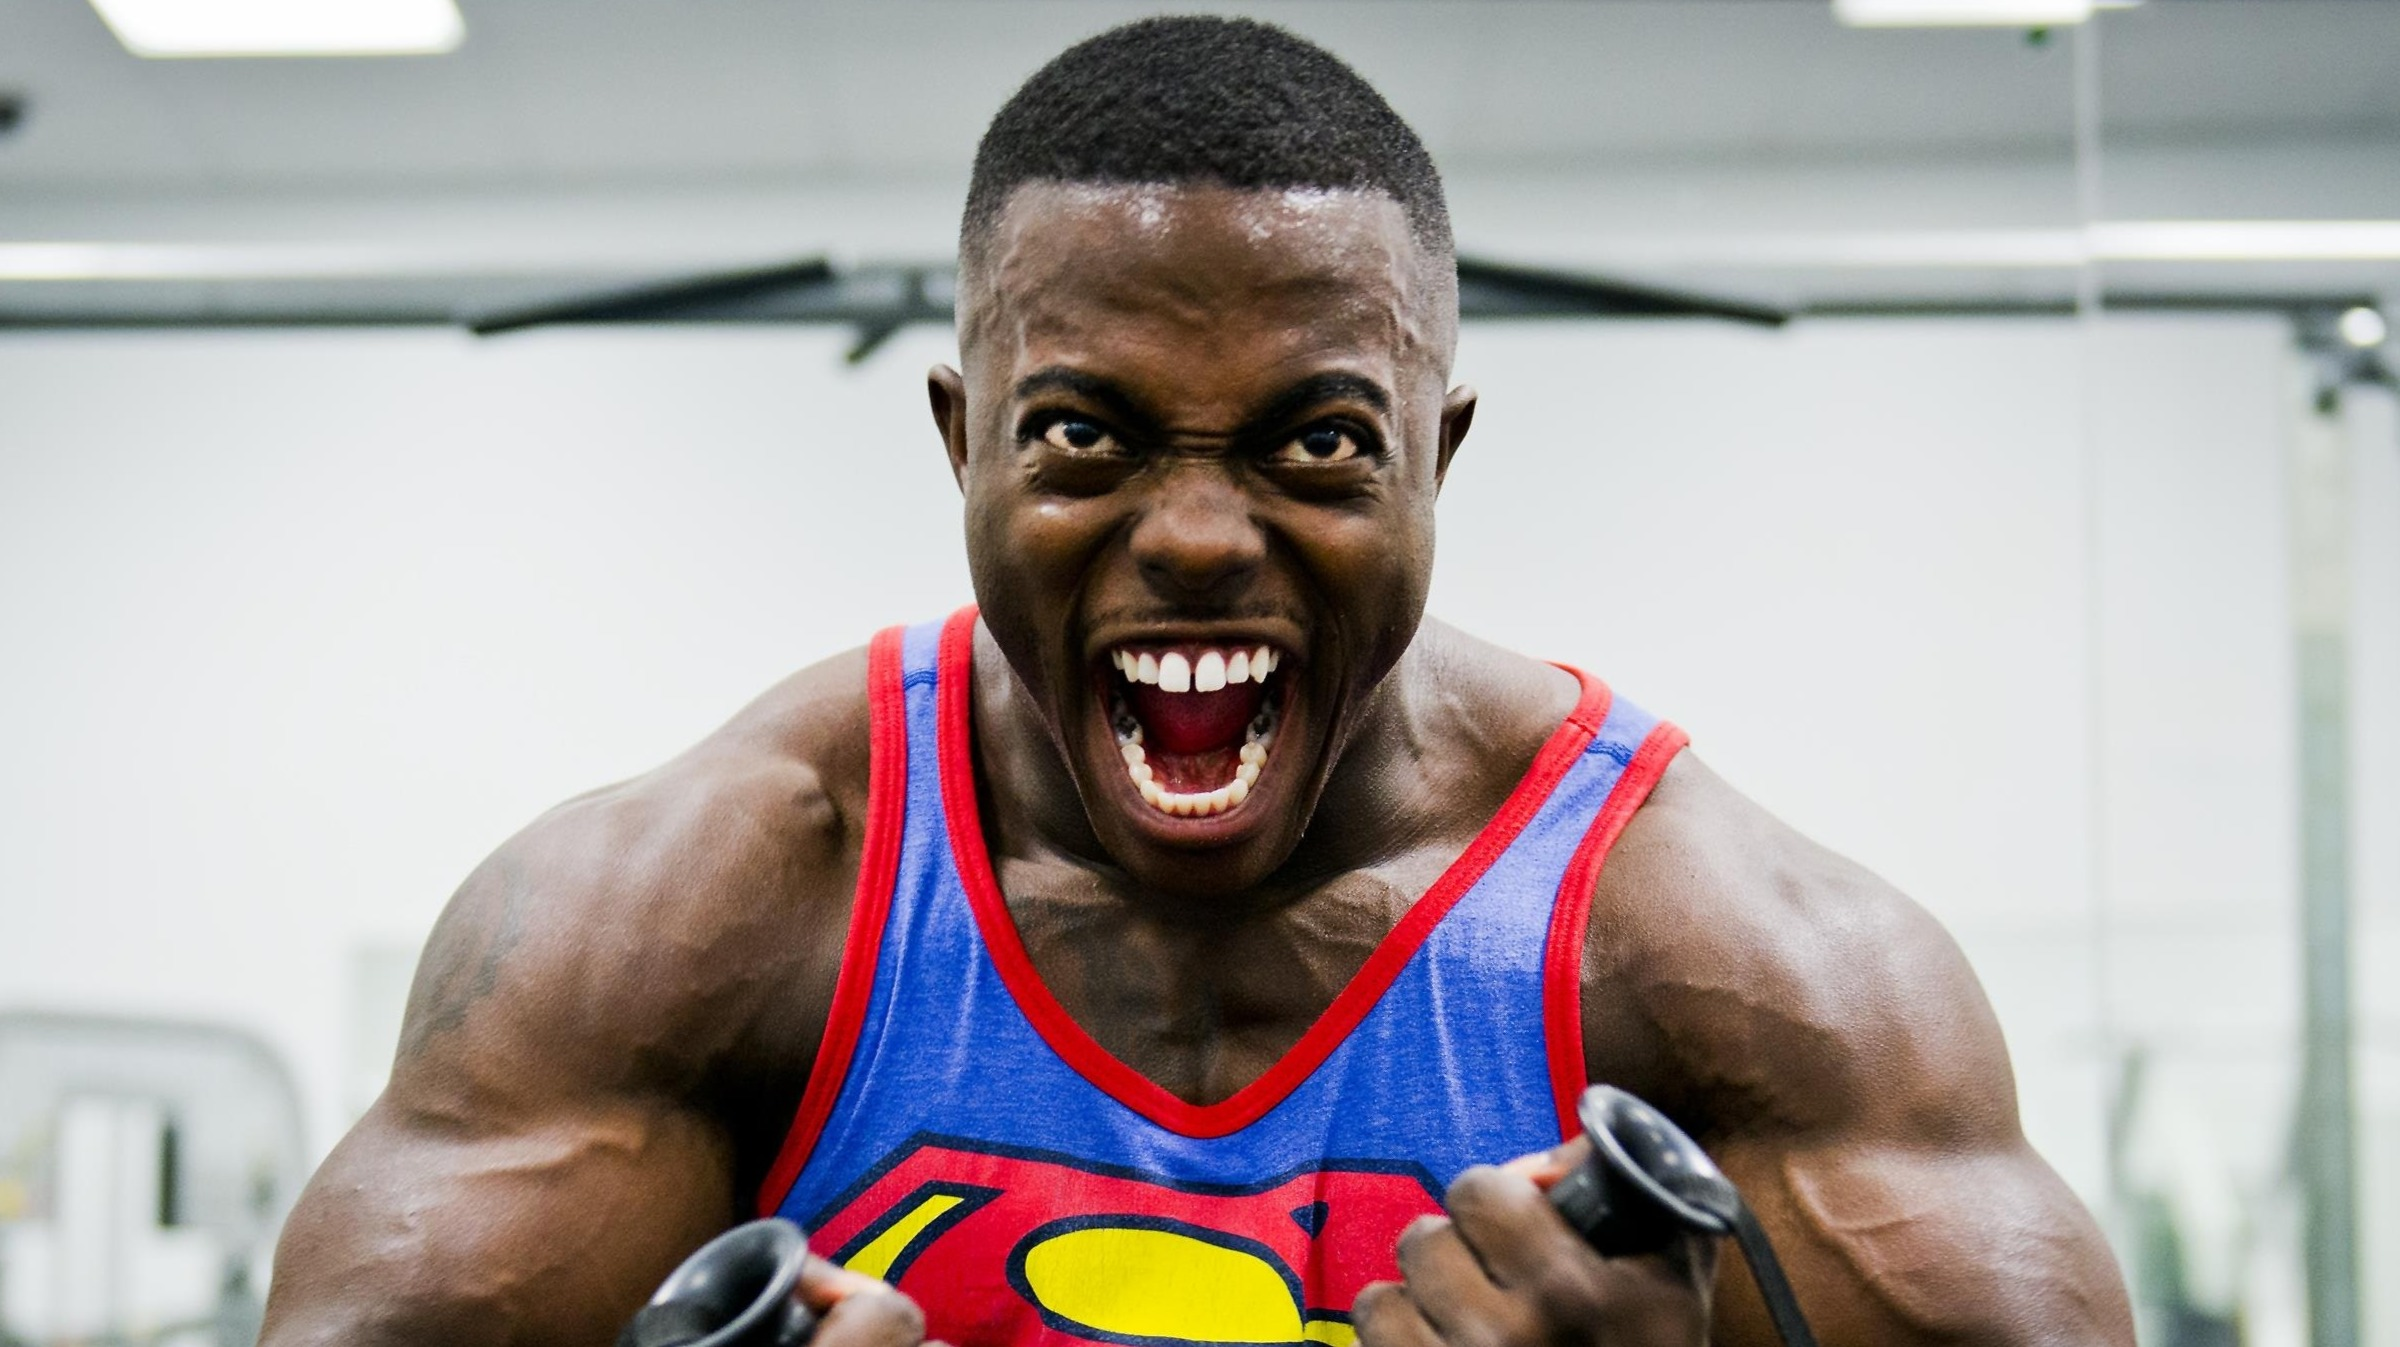 My guy is jacked lol (credit to pexels for dope image)